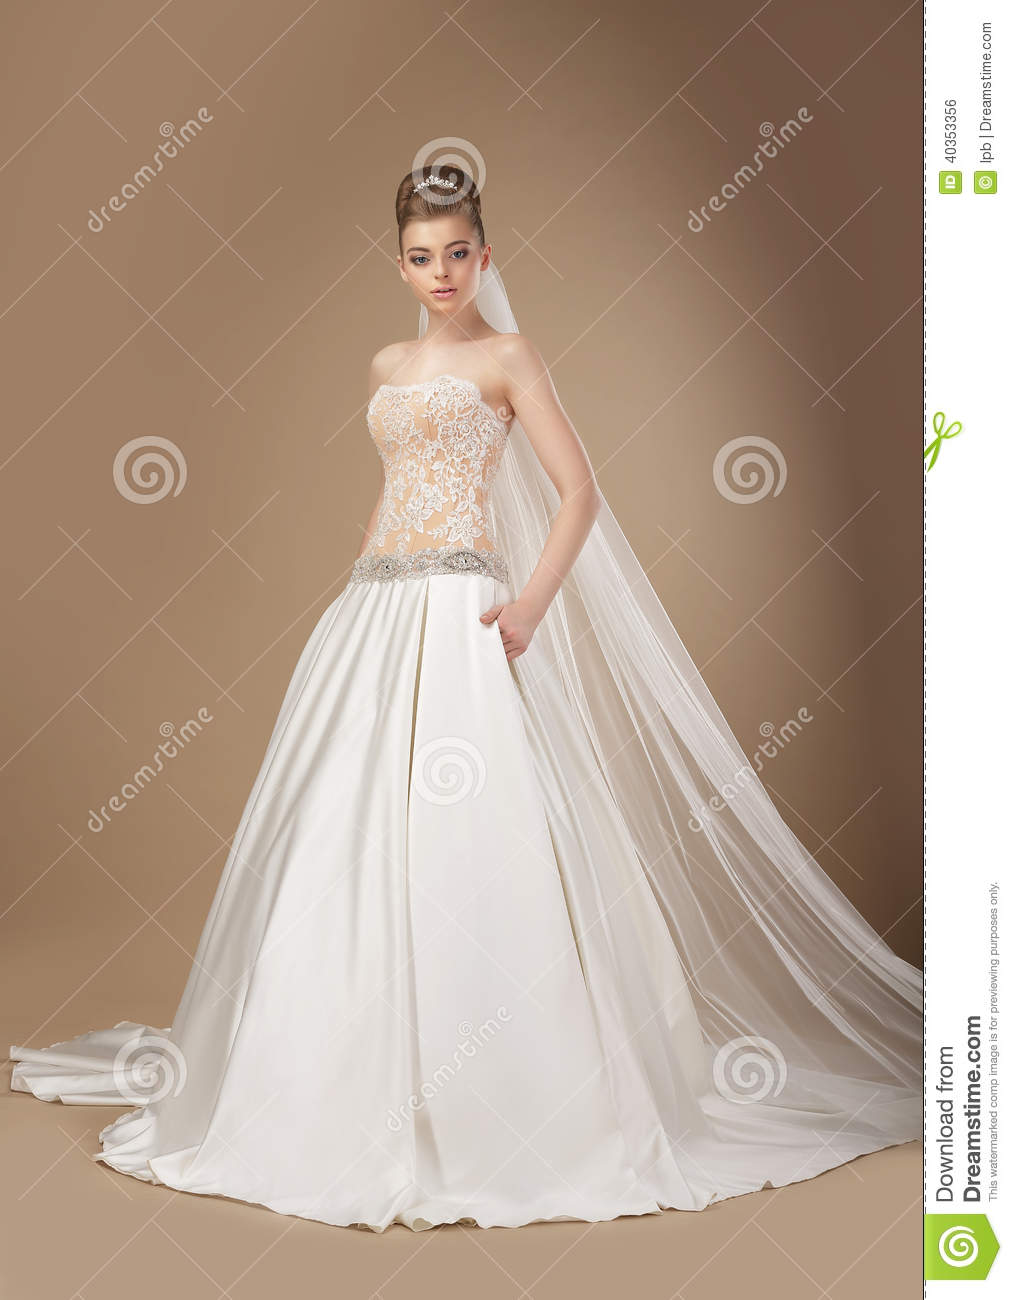 Classy And Elegant Black And White Flooring Design Ideas: Classy Woman In Long Elegant Dress Posing Stock Photo